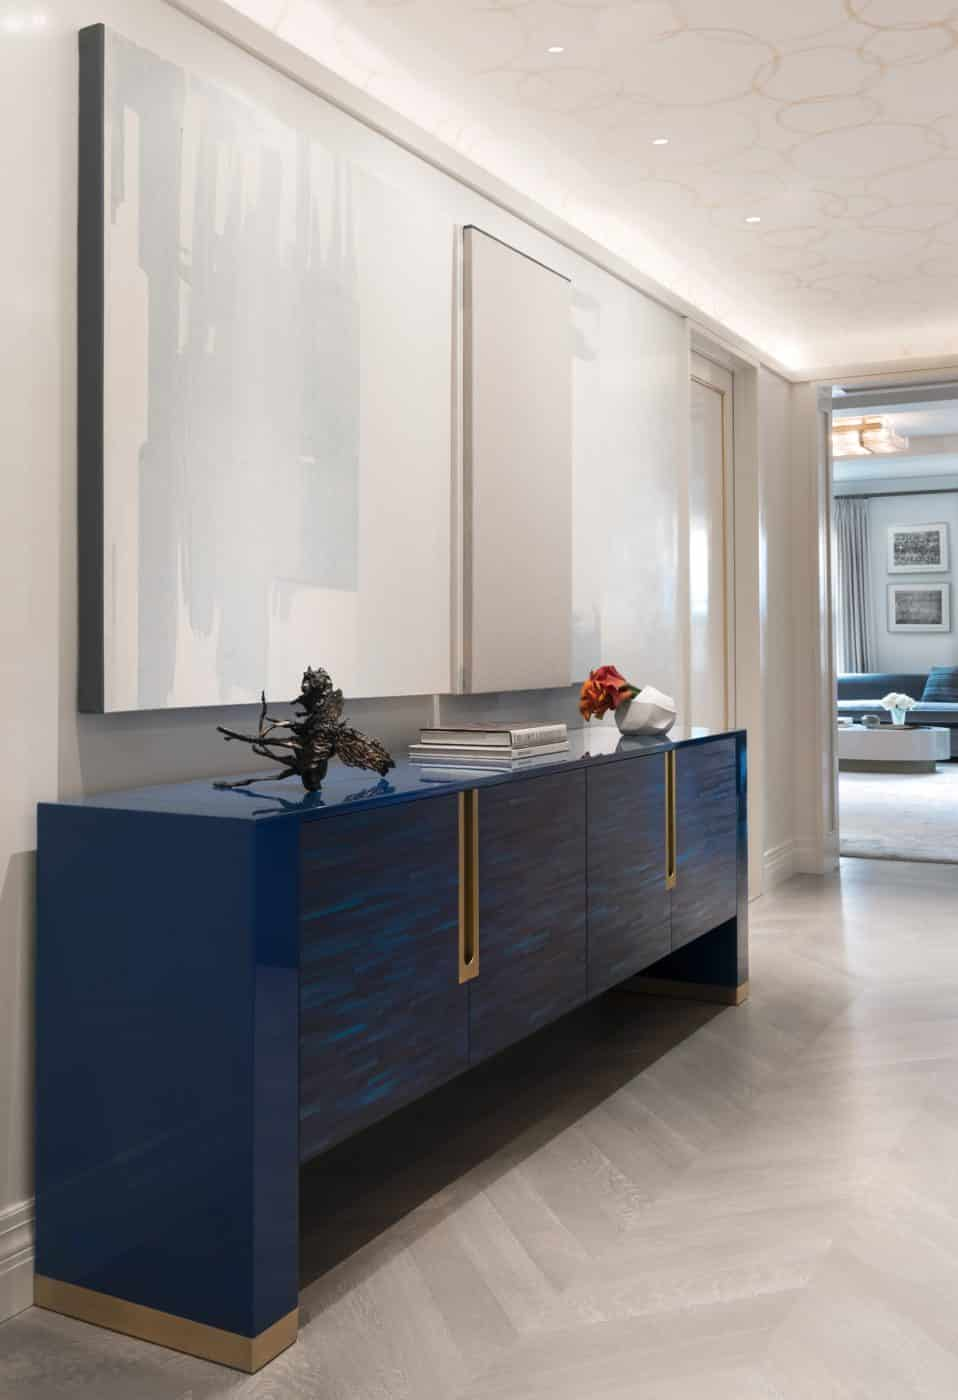 Foyer with blue Japanese lacquer table